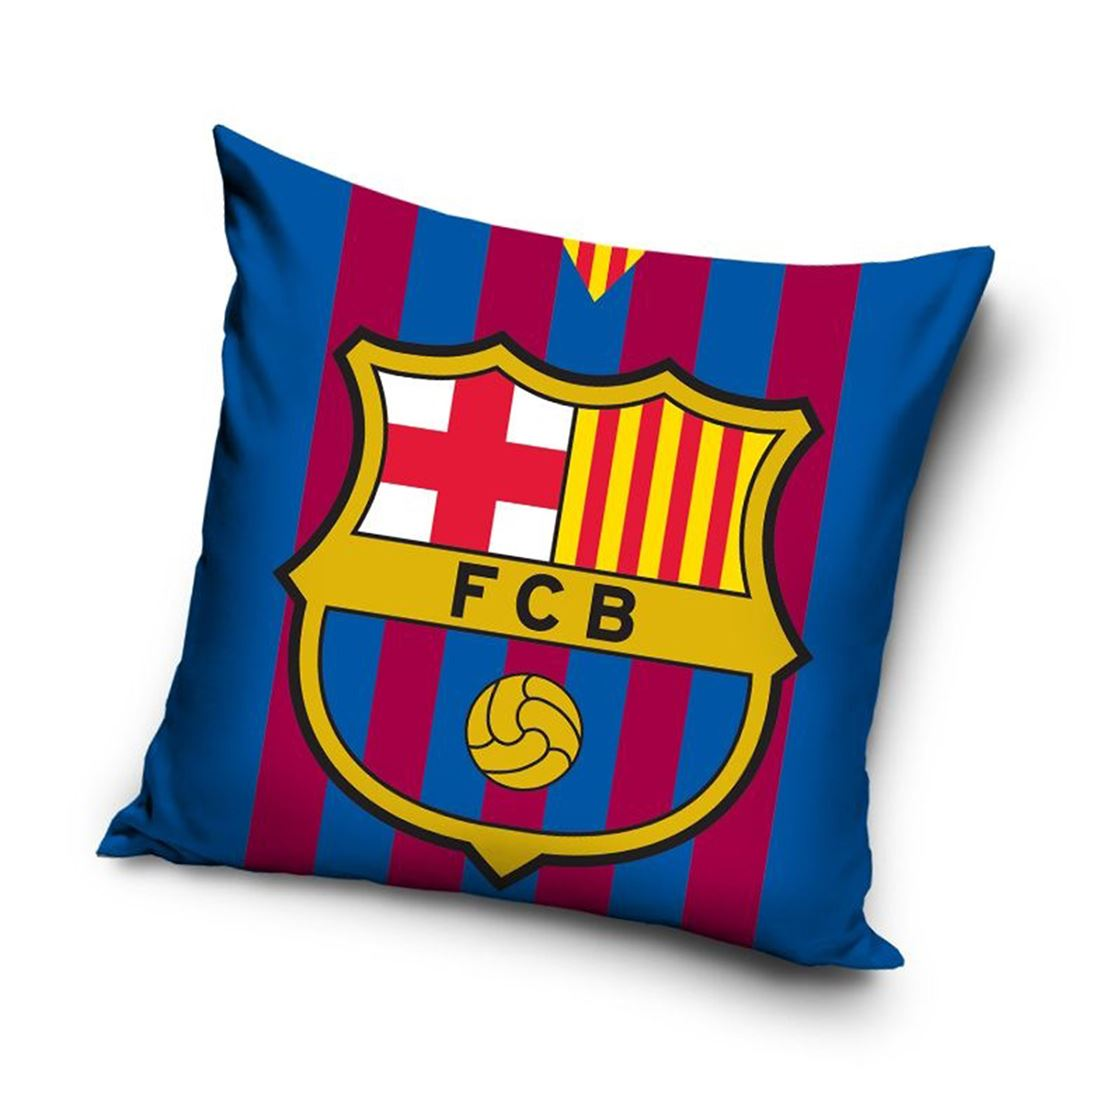 FOOTBALL-TEAM-OFFICIAL-CUSHIONS-ARSENAL-BARCELONA-REAL-MADRID-CHELSEA-NEW